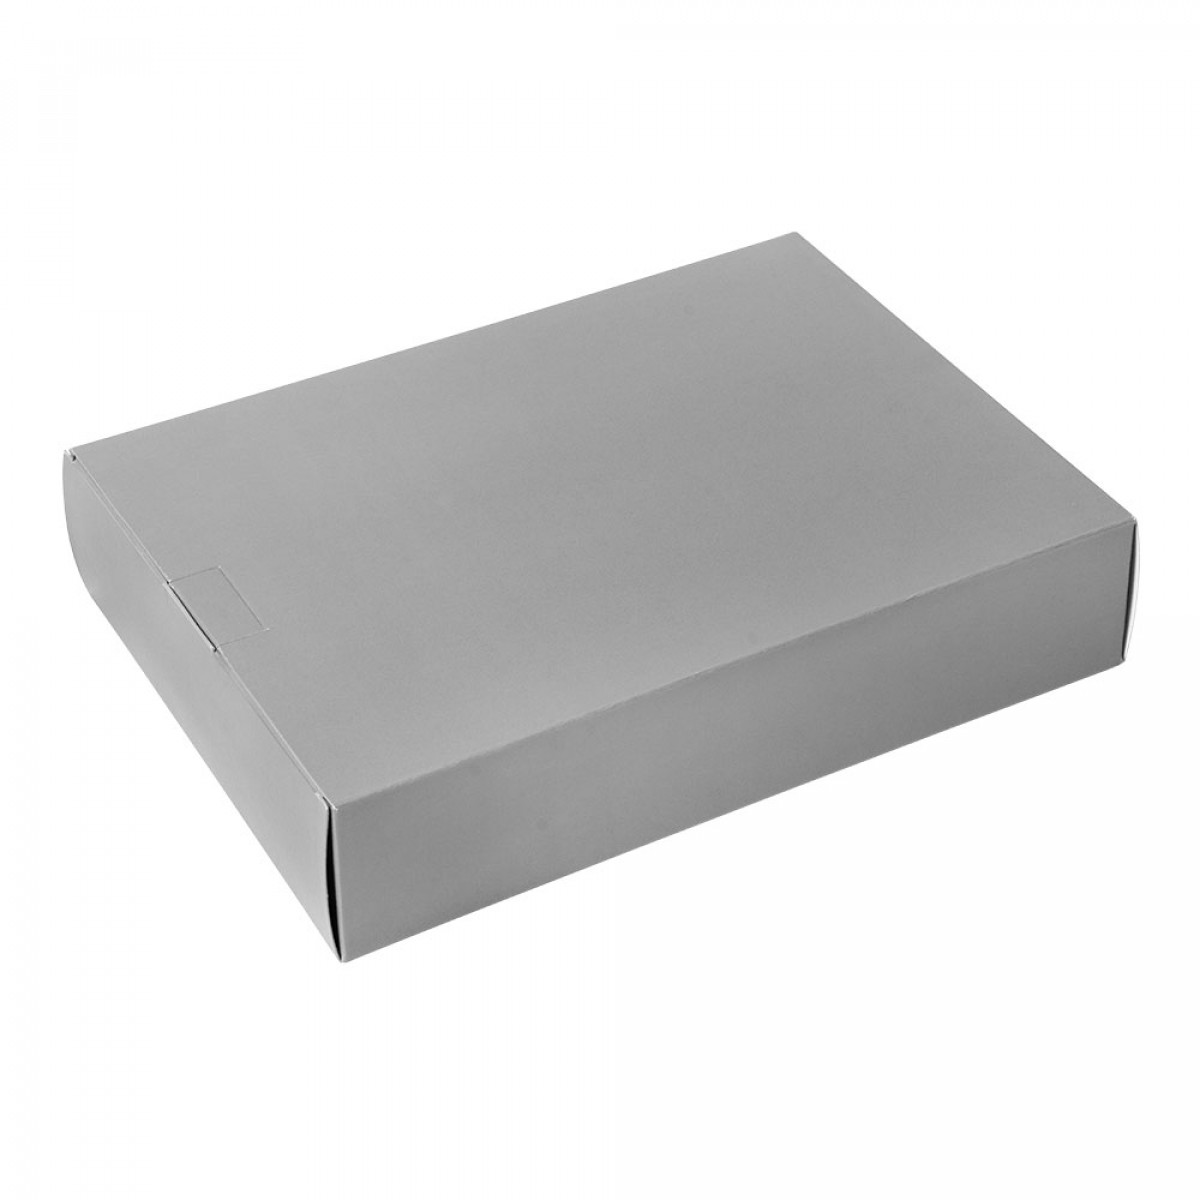 Packbox 420x305x90mm, Zilver